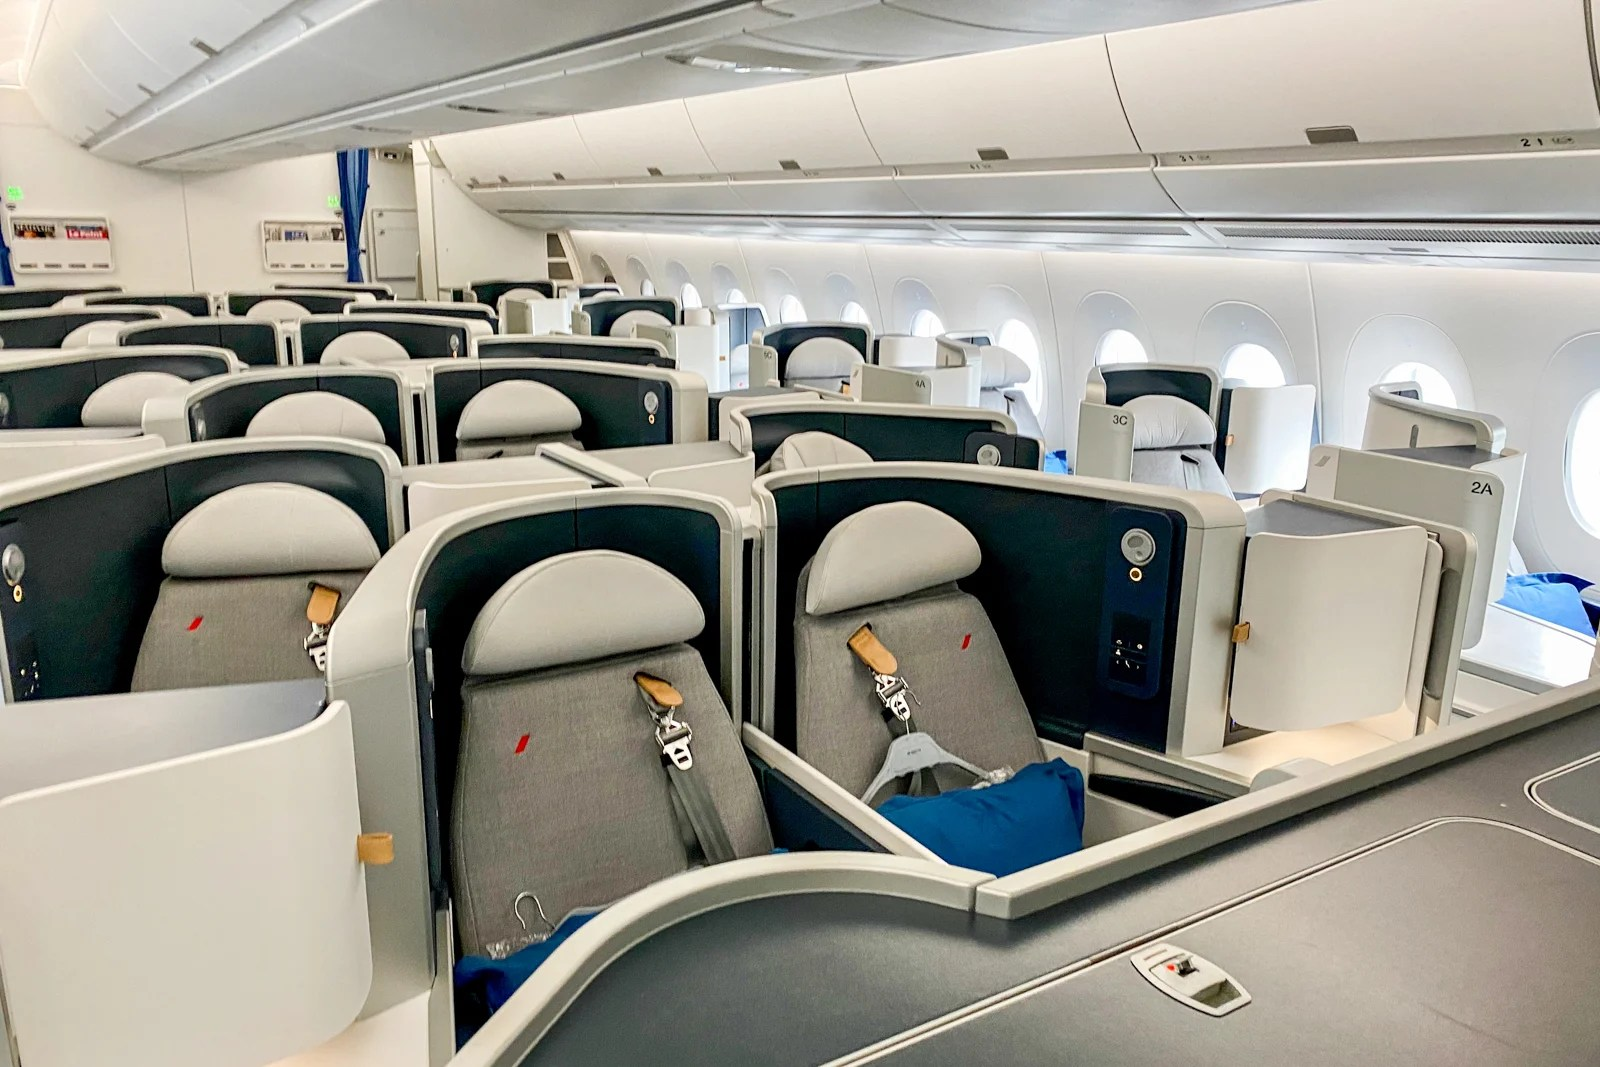 Fantastic Air France business-class award availability for fall 2020